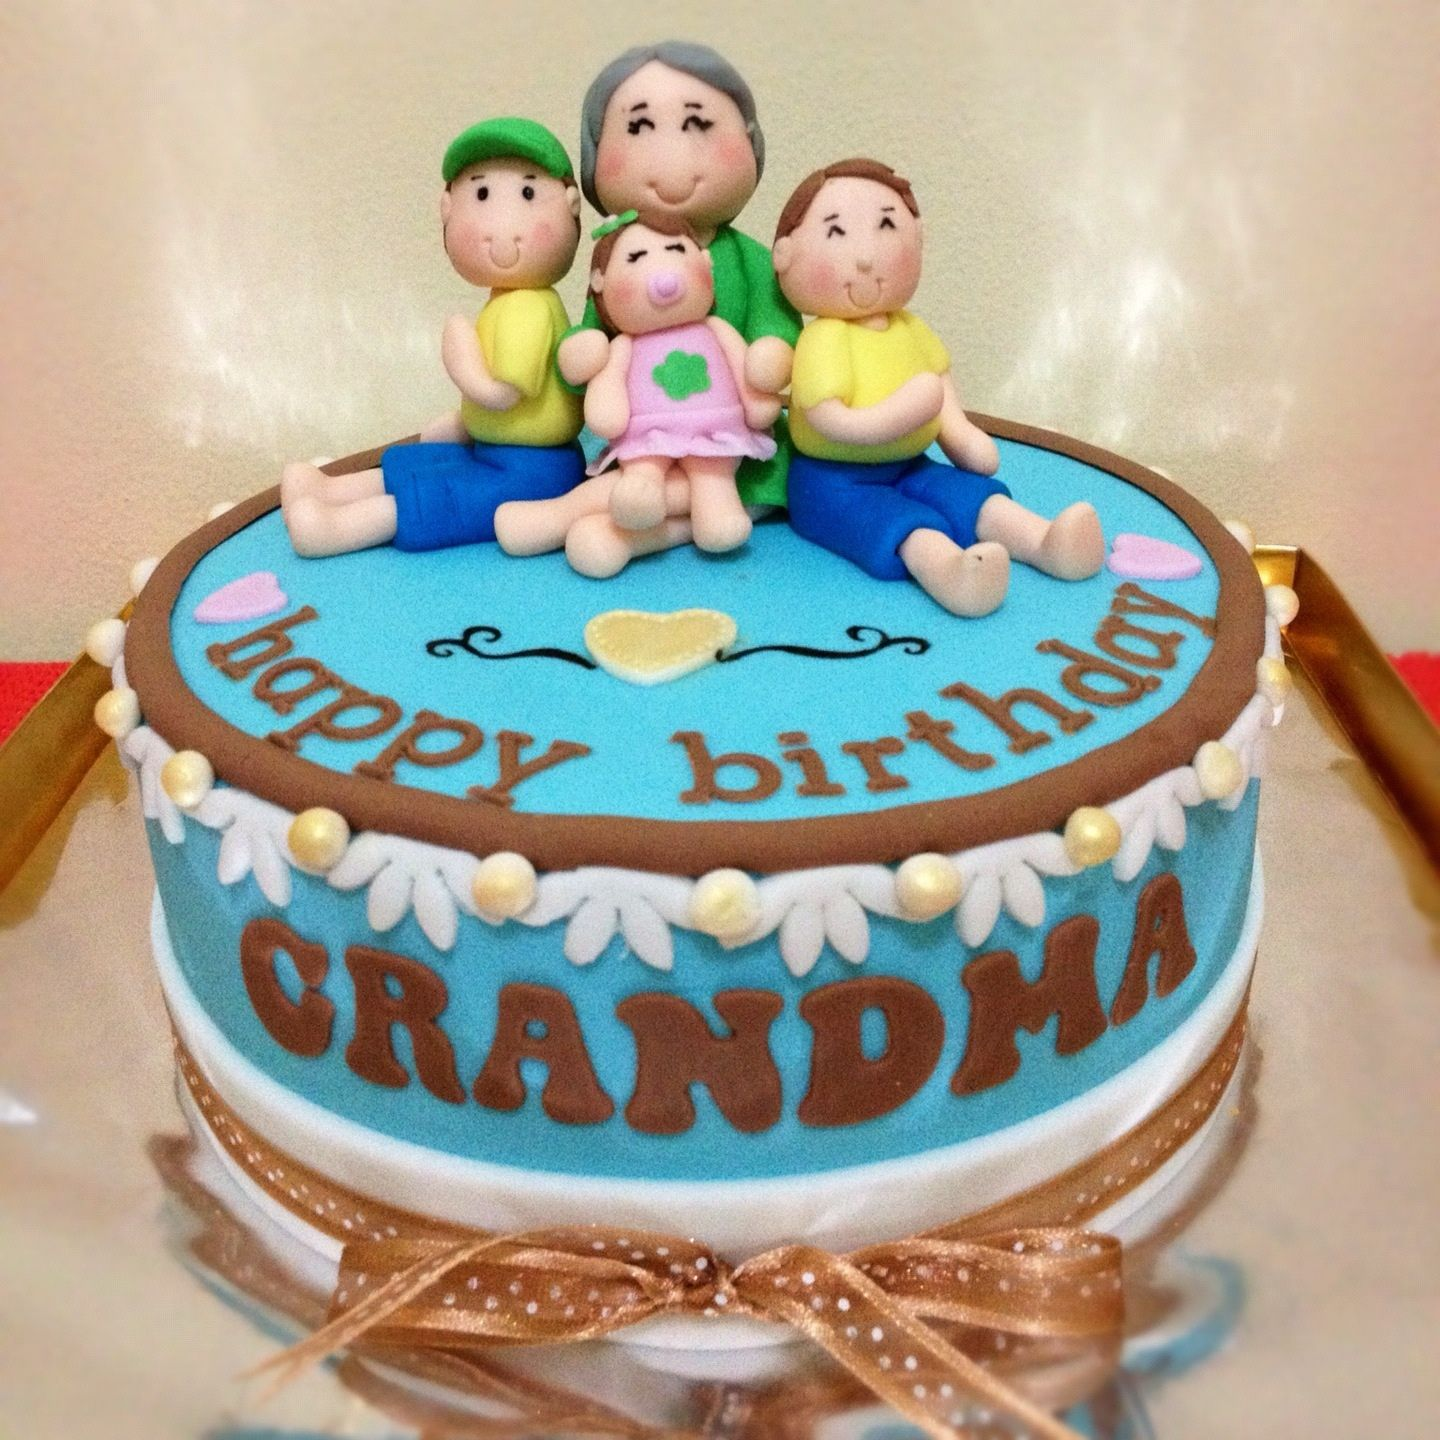 birthday cake for grandma Cupcake, Snowball and Cakes